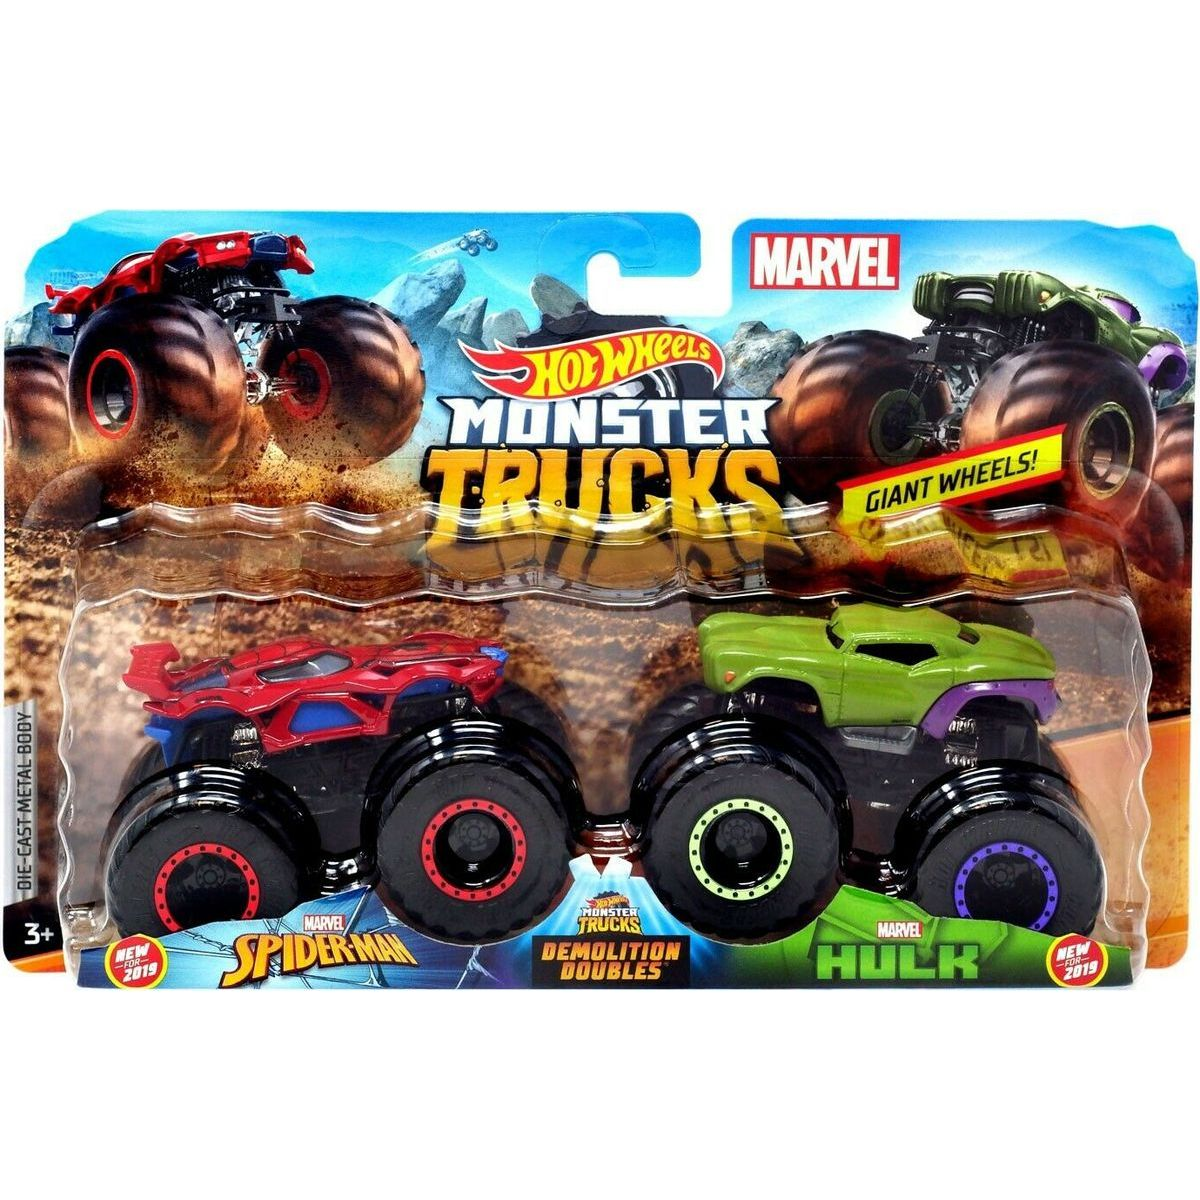 Mattel Hot Wheels Monster trucks demoliční duo Spiderman VS Hulk